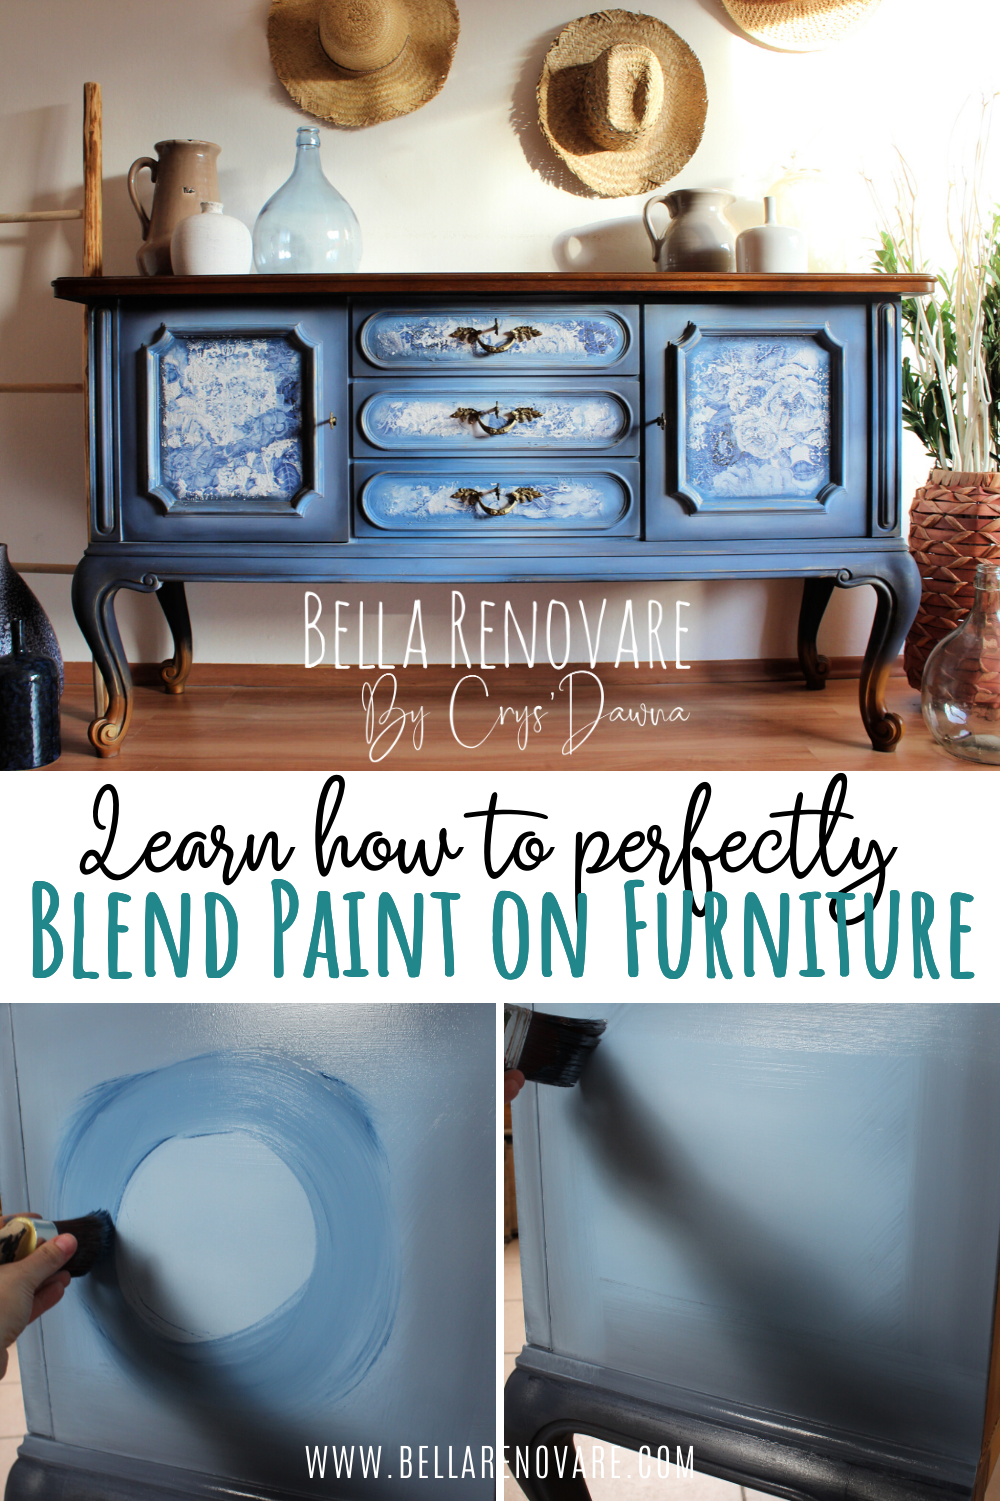 How To Perfect Blending Paint On Furniture